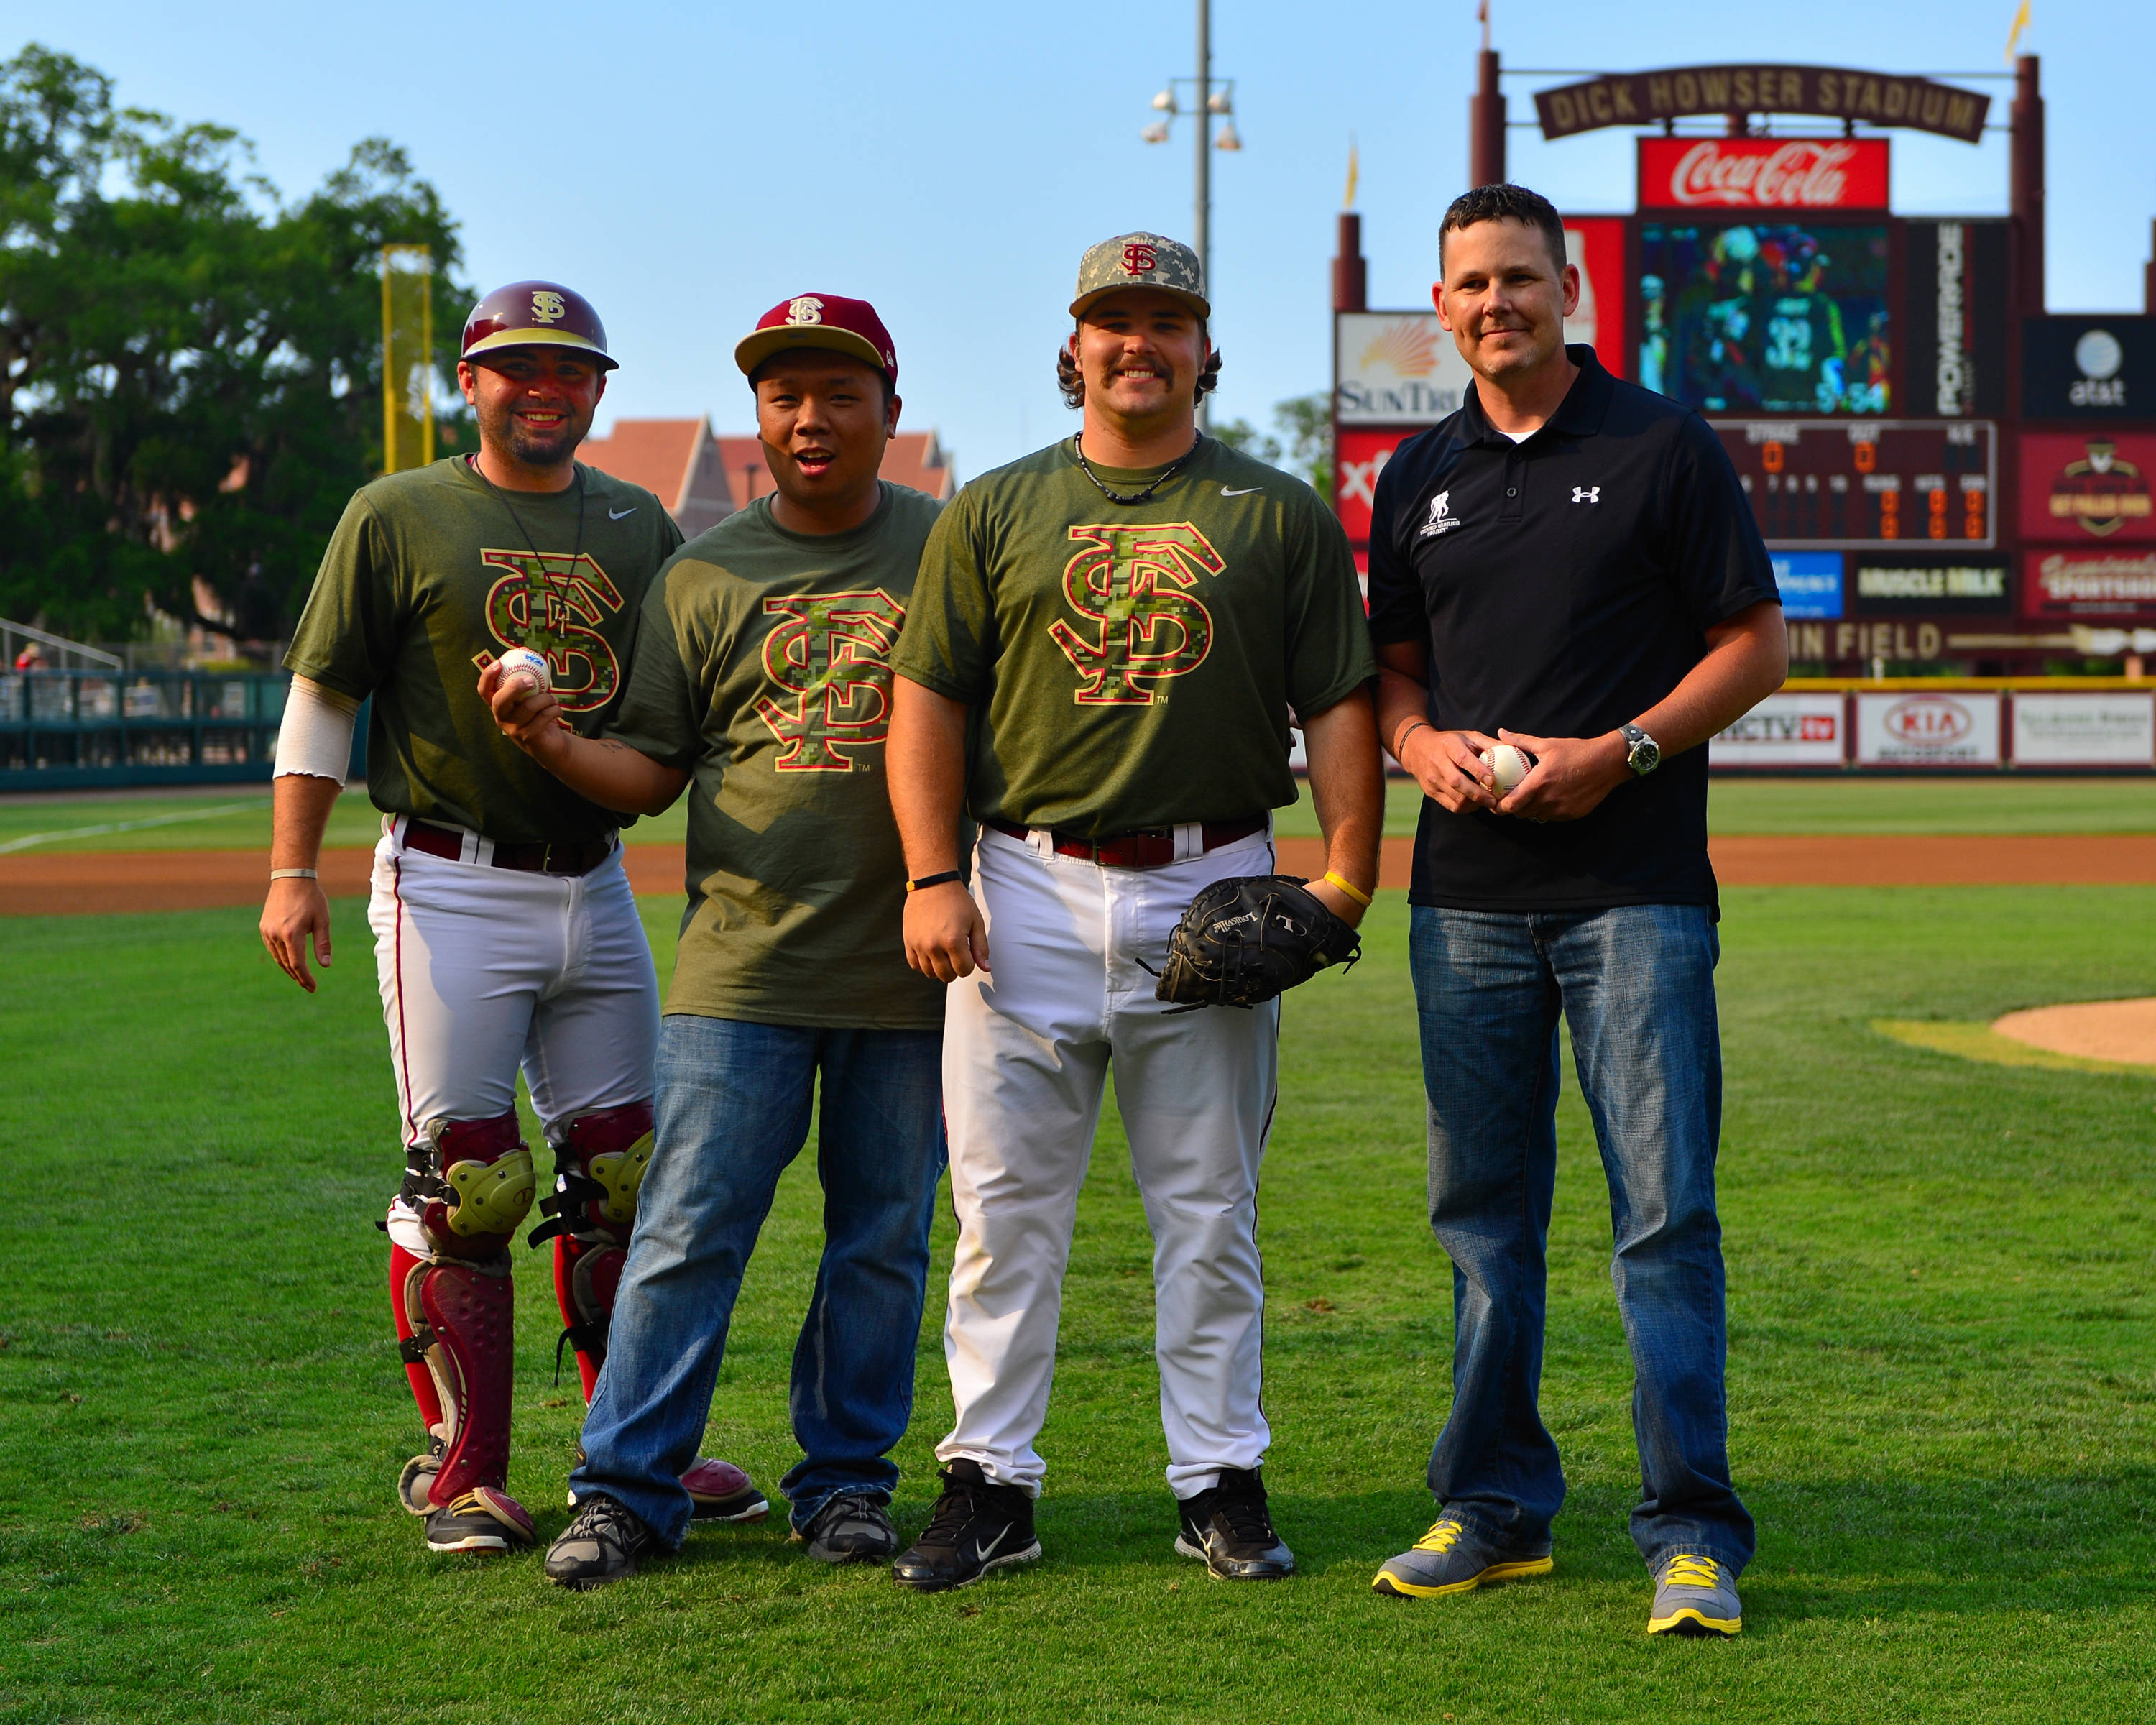 Ladson Montgomery and Scott Sitz with special first pitch members honoring the Seminole Student Veterans and Wounded Warrior Project.